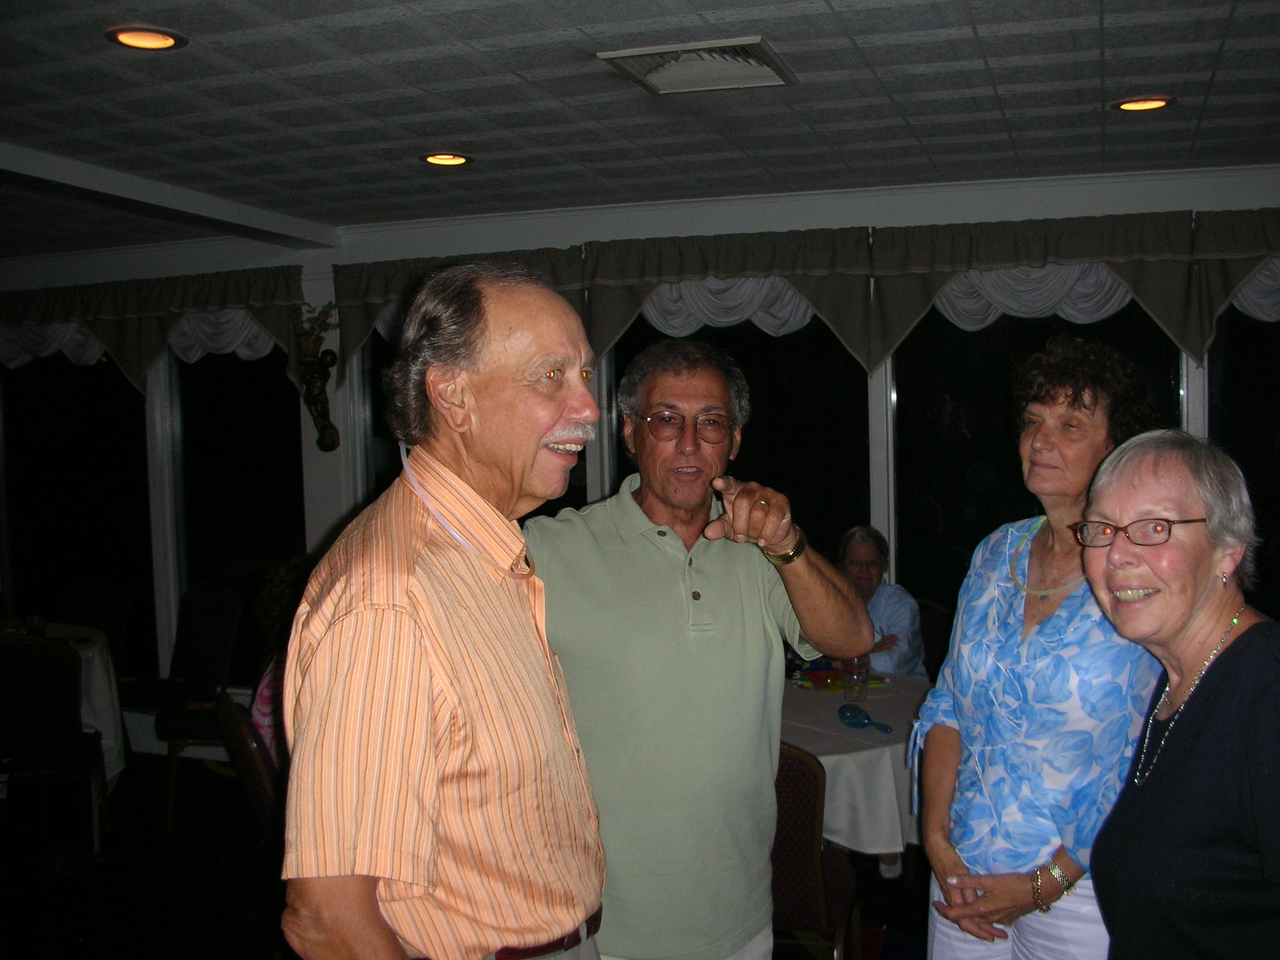 Mom and Dad at thier 50th wedding anniversary at the Ocean Acres Country Club in Manahawkin New Jersey.